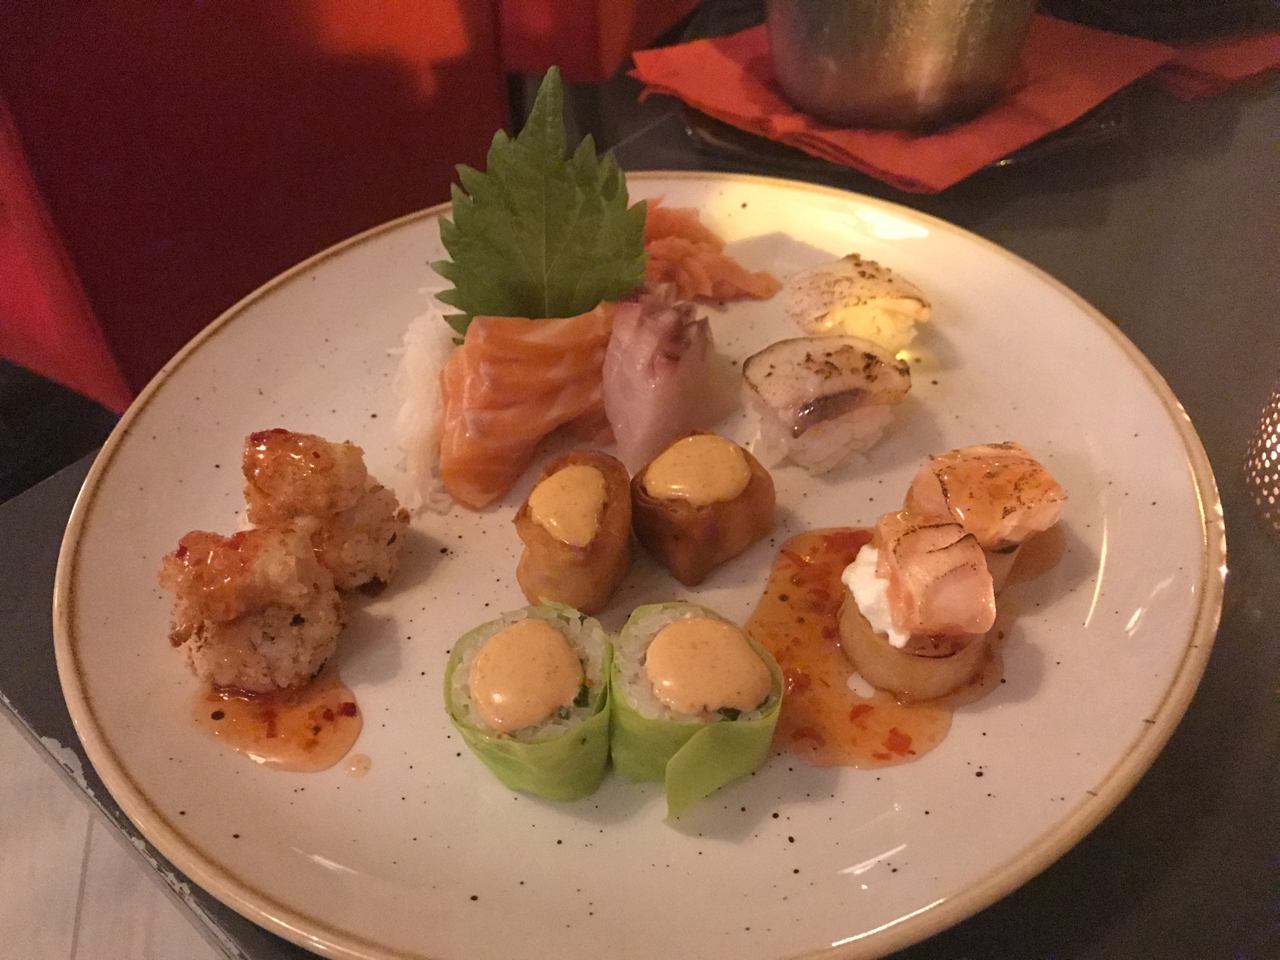 A plate filled with omakase at Confraria Sushi, a Japanese restaurant in Cascais, Portugal. Photo Courtesy of FoodWaterShoes